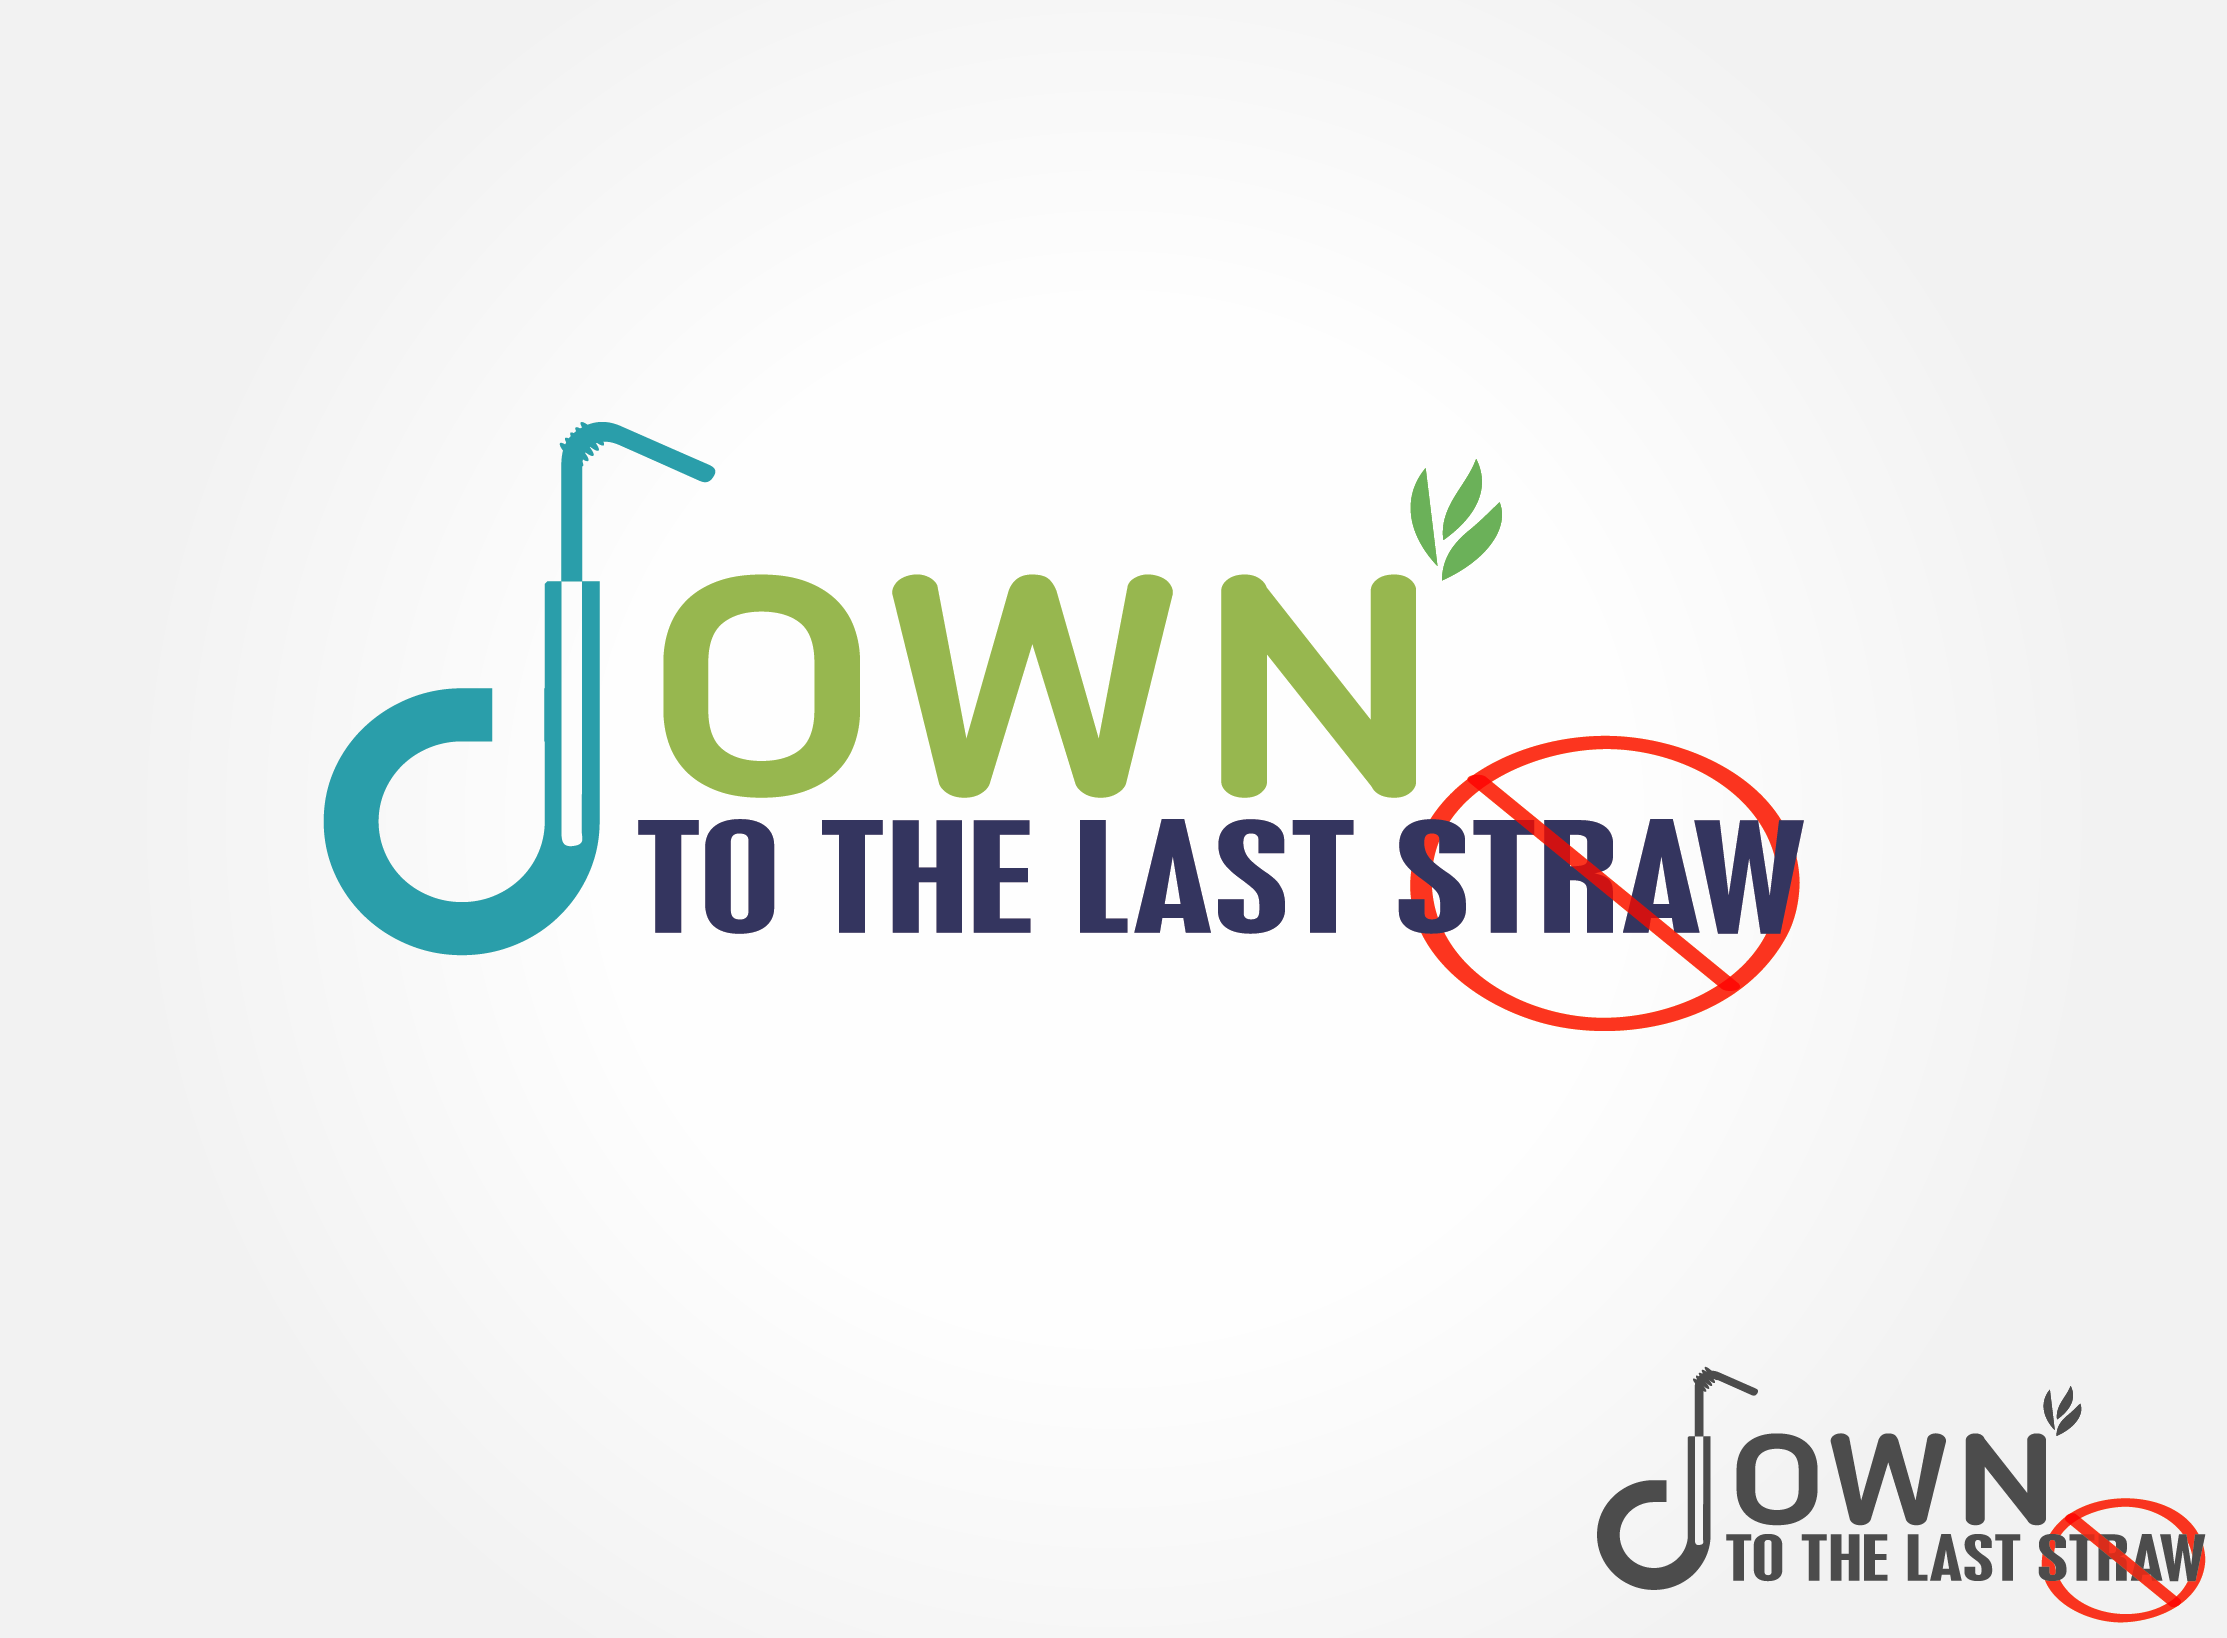 Logo Design by Maninder pal Singh - Entry No. 17 in the Logo Design Contest New Logo Design for DOWN TO THE LAST STRAW.